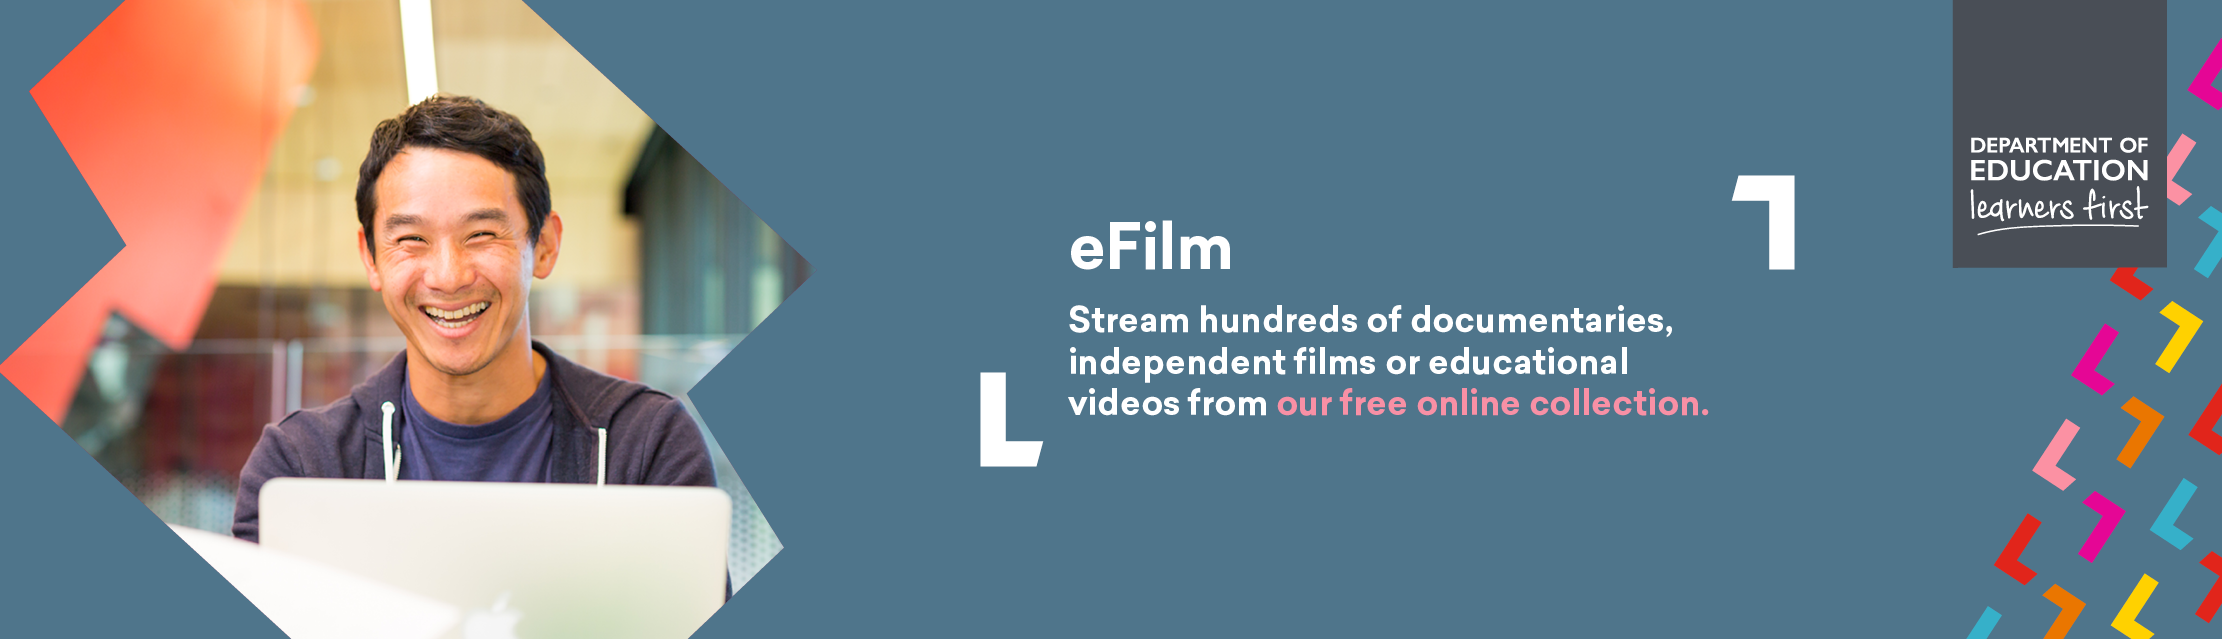 Stream hundreds of documentaries, independent films, or educational videos from our free online collection